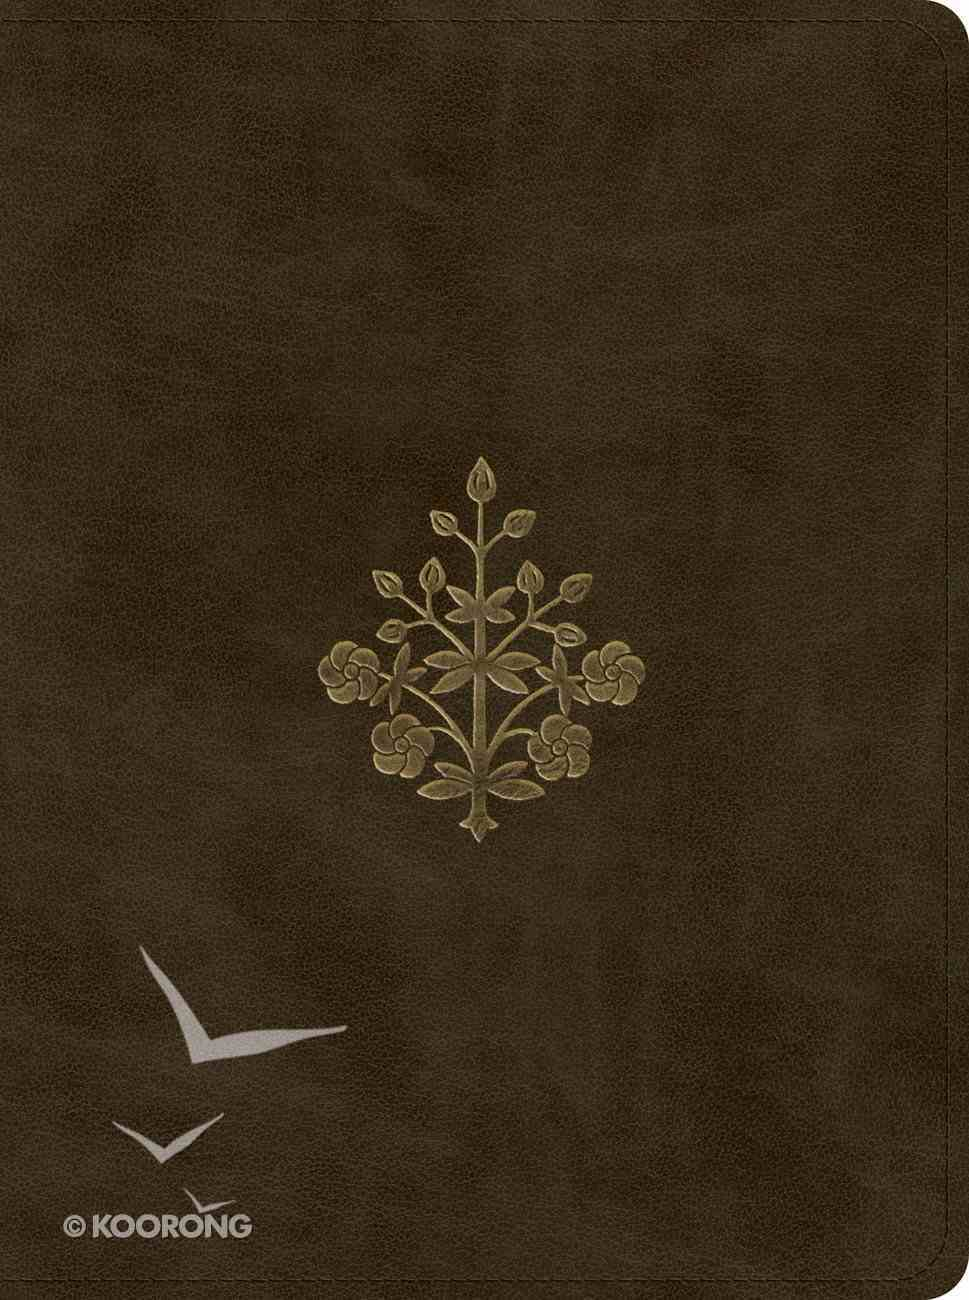 ESV Proverbs Daily Wisdom Olive Branch Design (Red Letter Edition) Imitation Leather